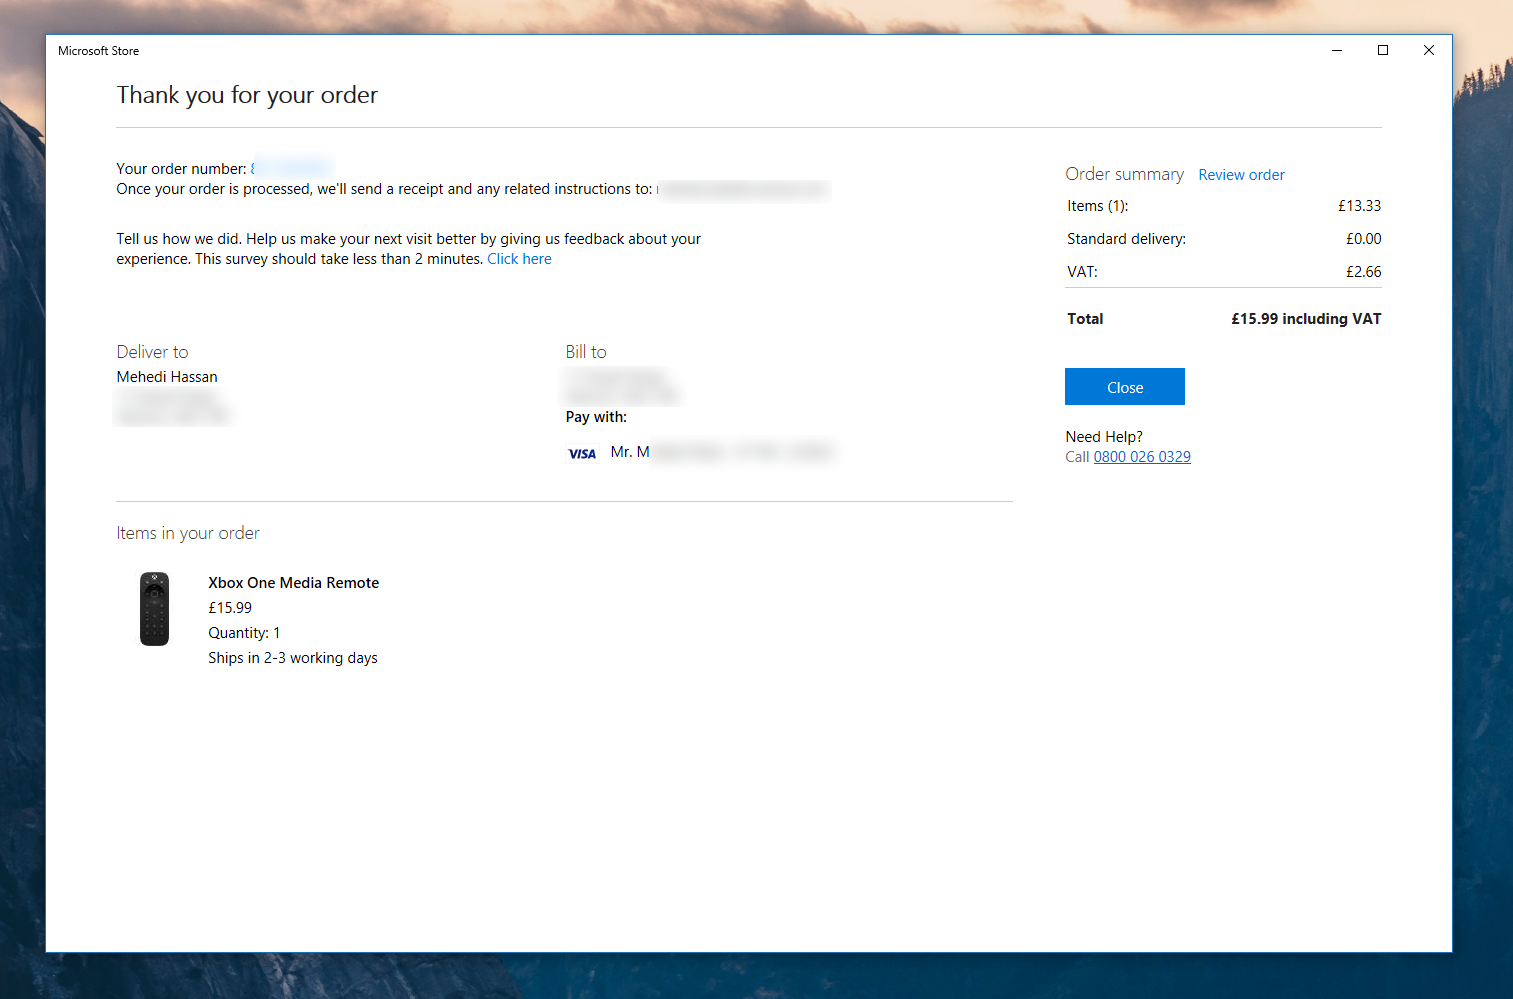 You'll soon be able to buy hardware from the Microsoft Store in Windows 10 10